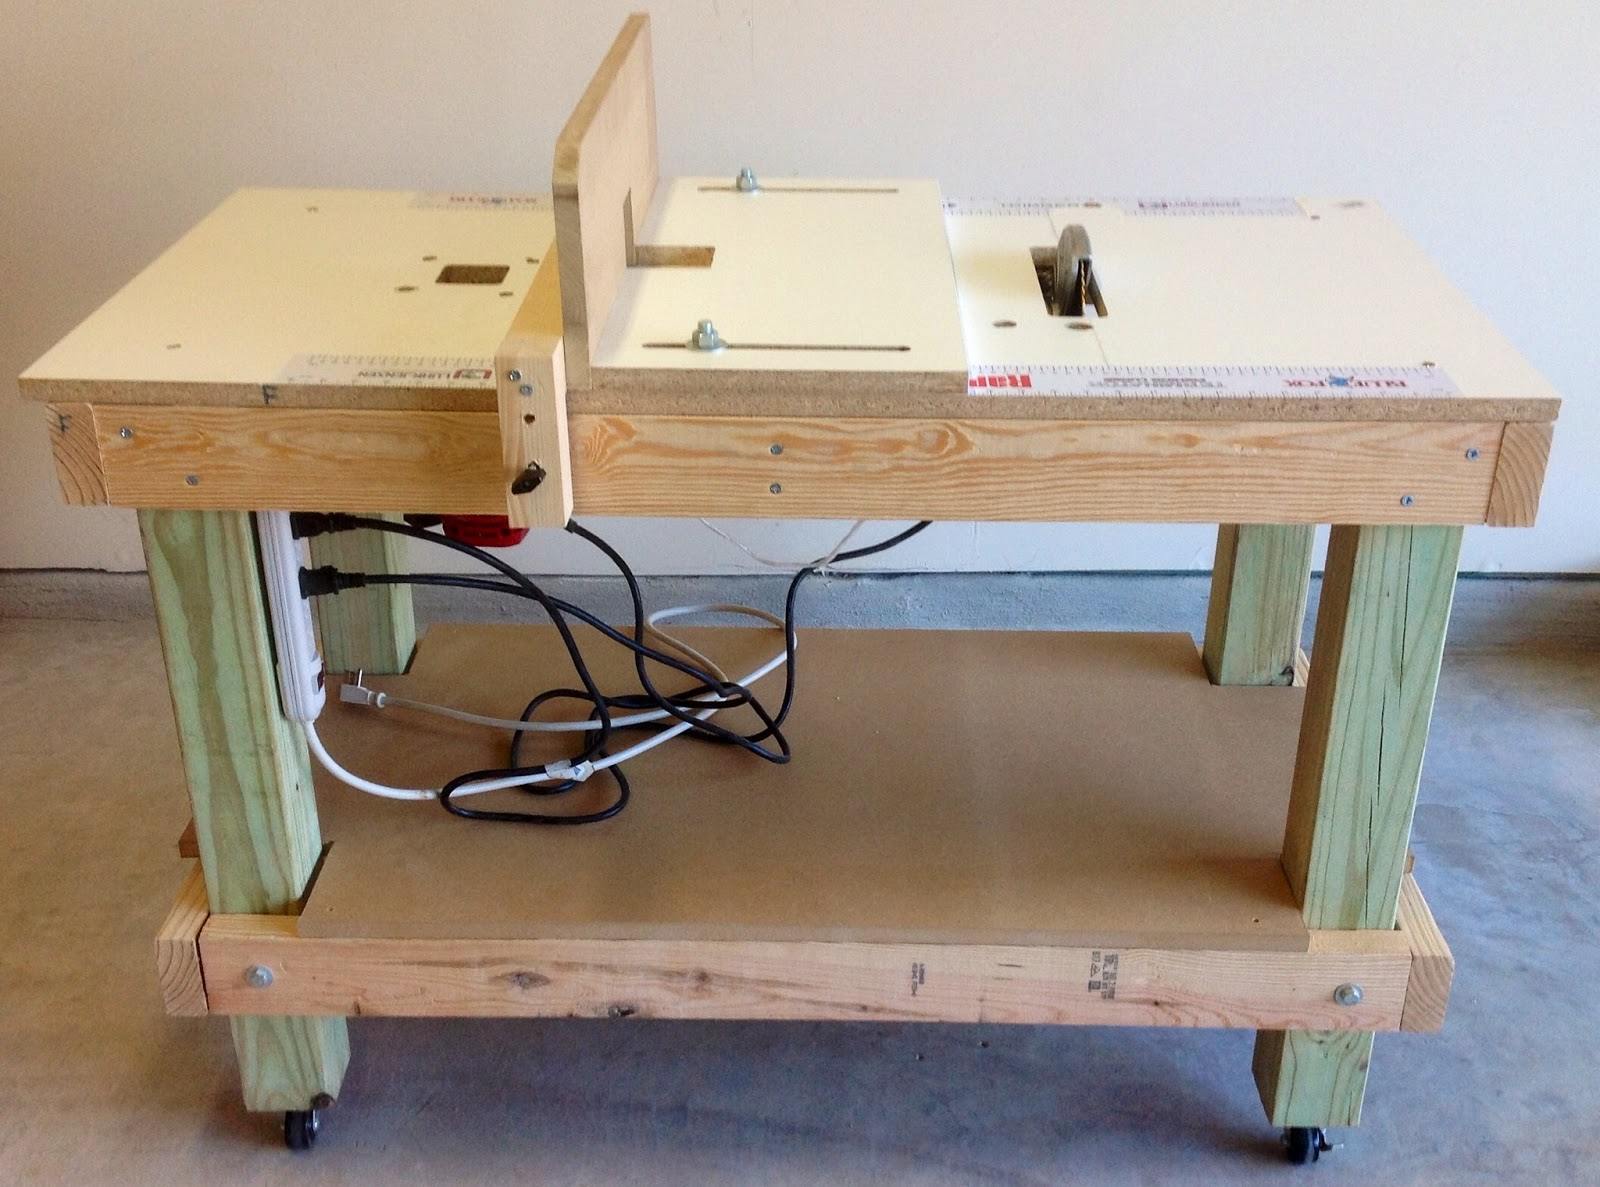 Thinking Wood: Project 2 - DIY Portable 3-in-1 Workbench / Table ...